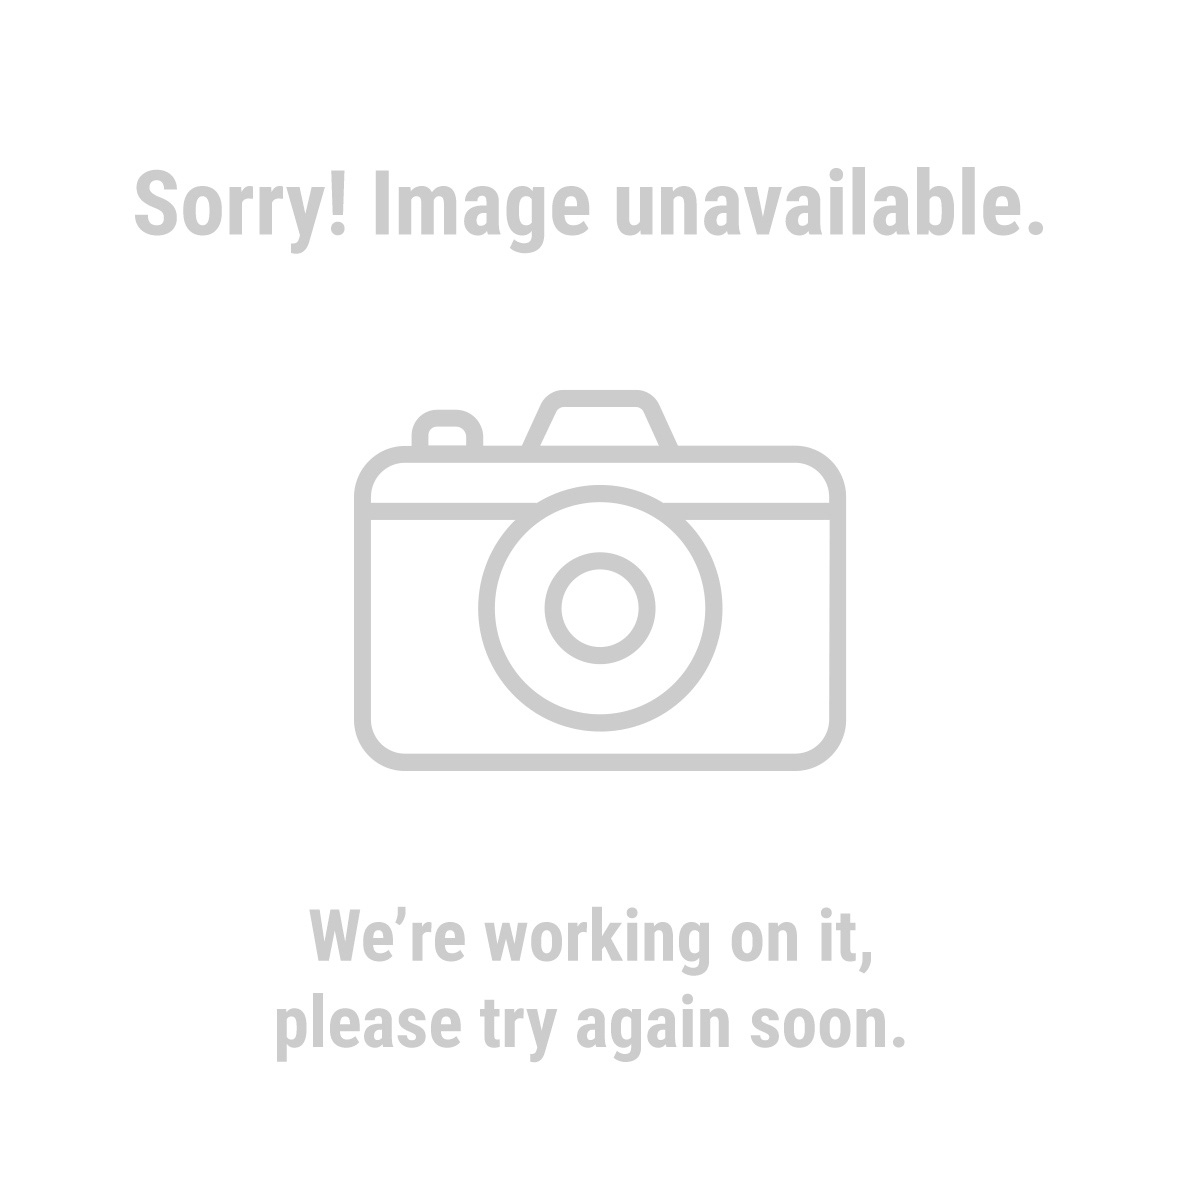 950 Lb  Capacity Foldable 4 Ft  x 8 Ft  Utility Trailer with 8